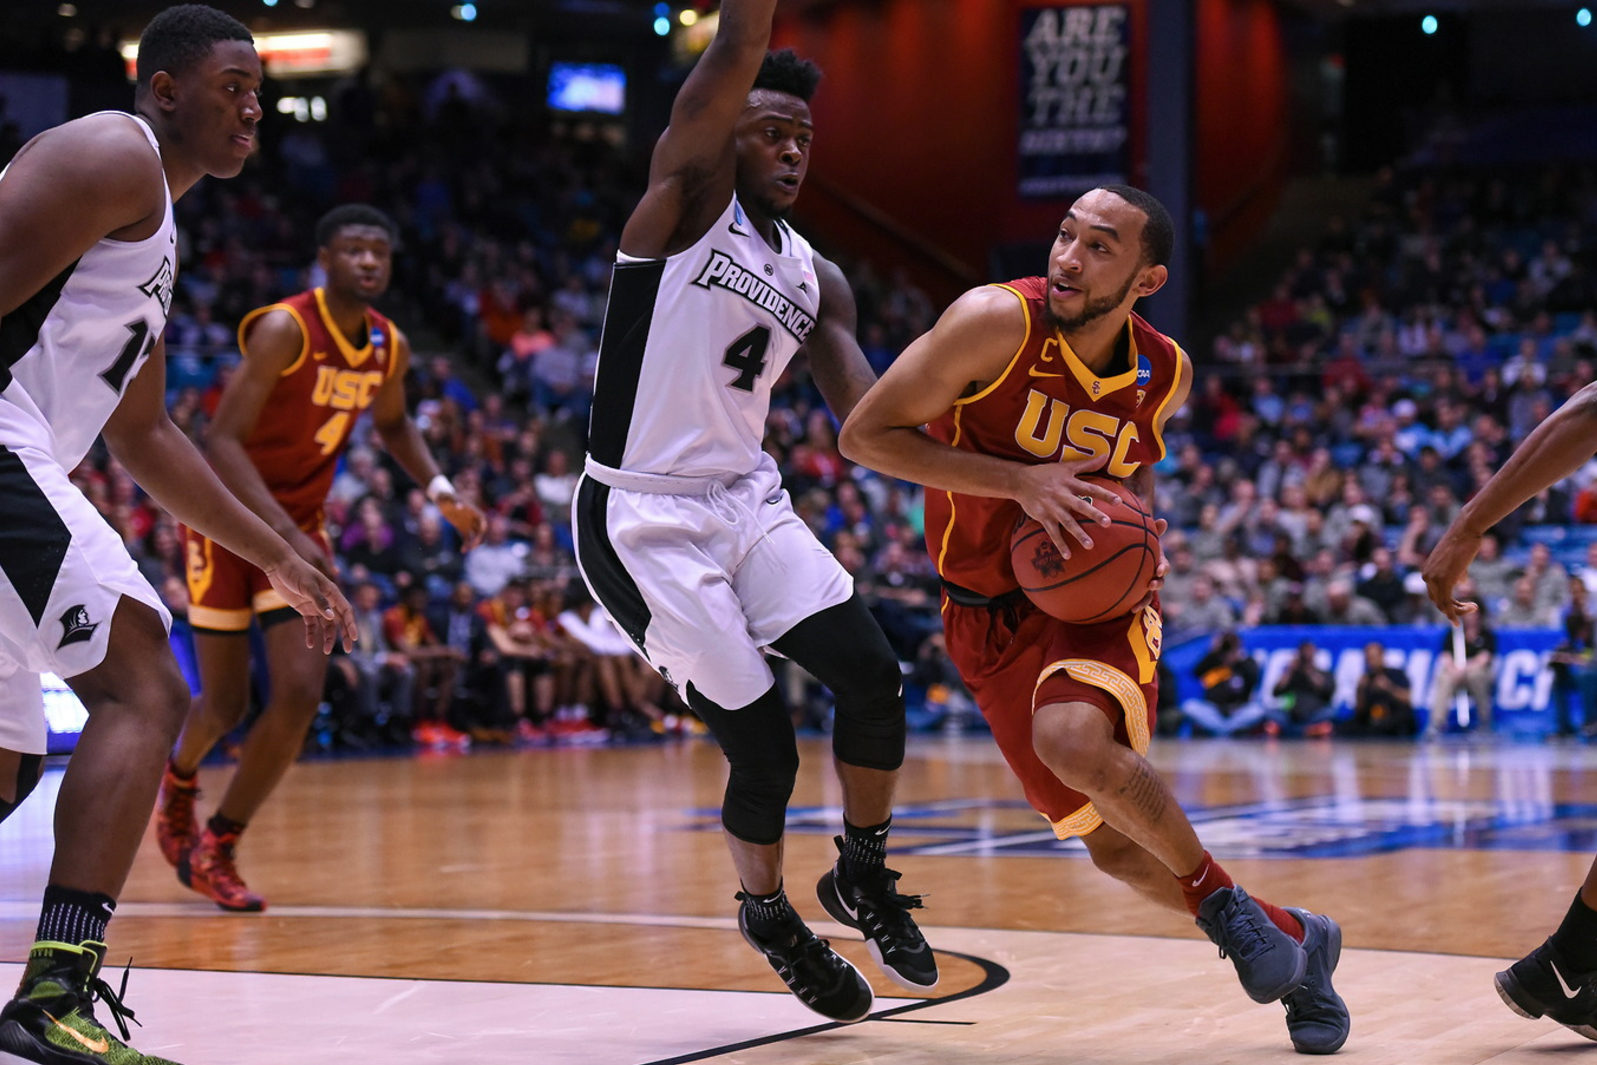 Trojans in March Madness: See what's next for USC in the ...